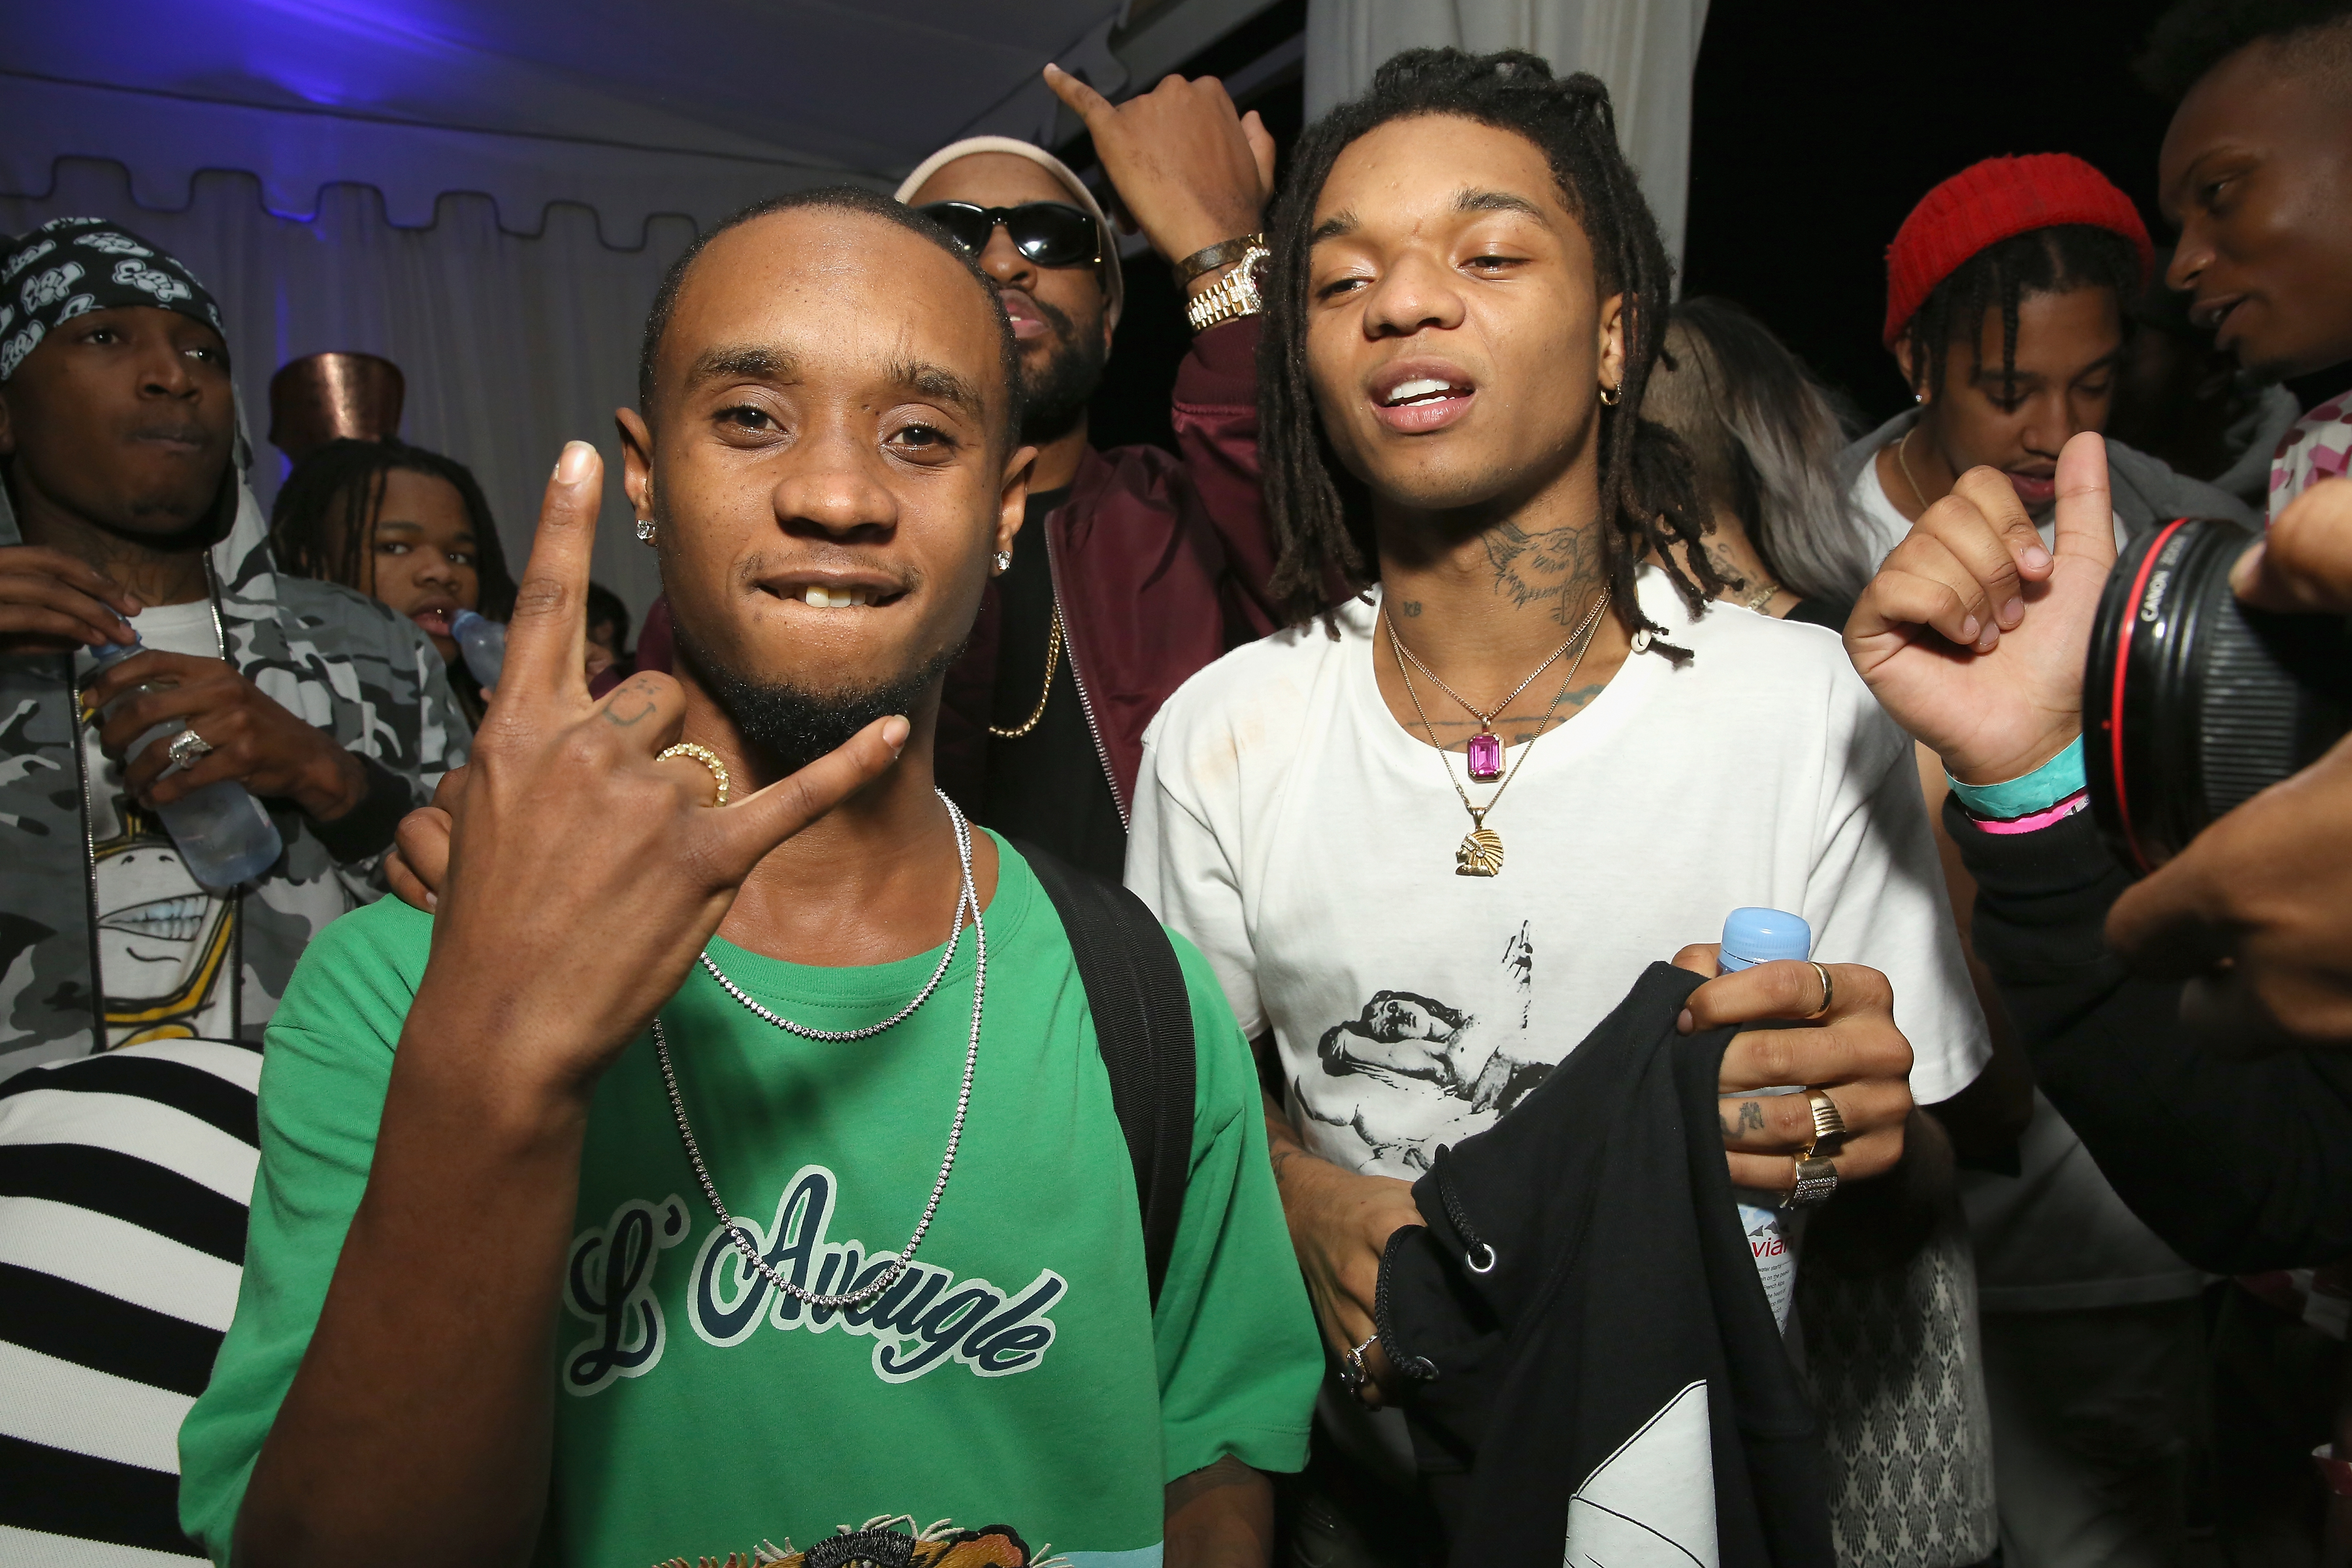 If You Want To Be A Famous Rapper, Here's Everyone You ... |Rae Sremmurd Before Fame